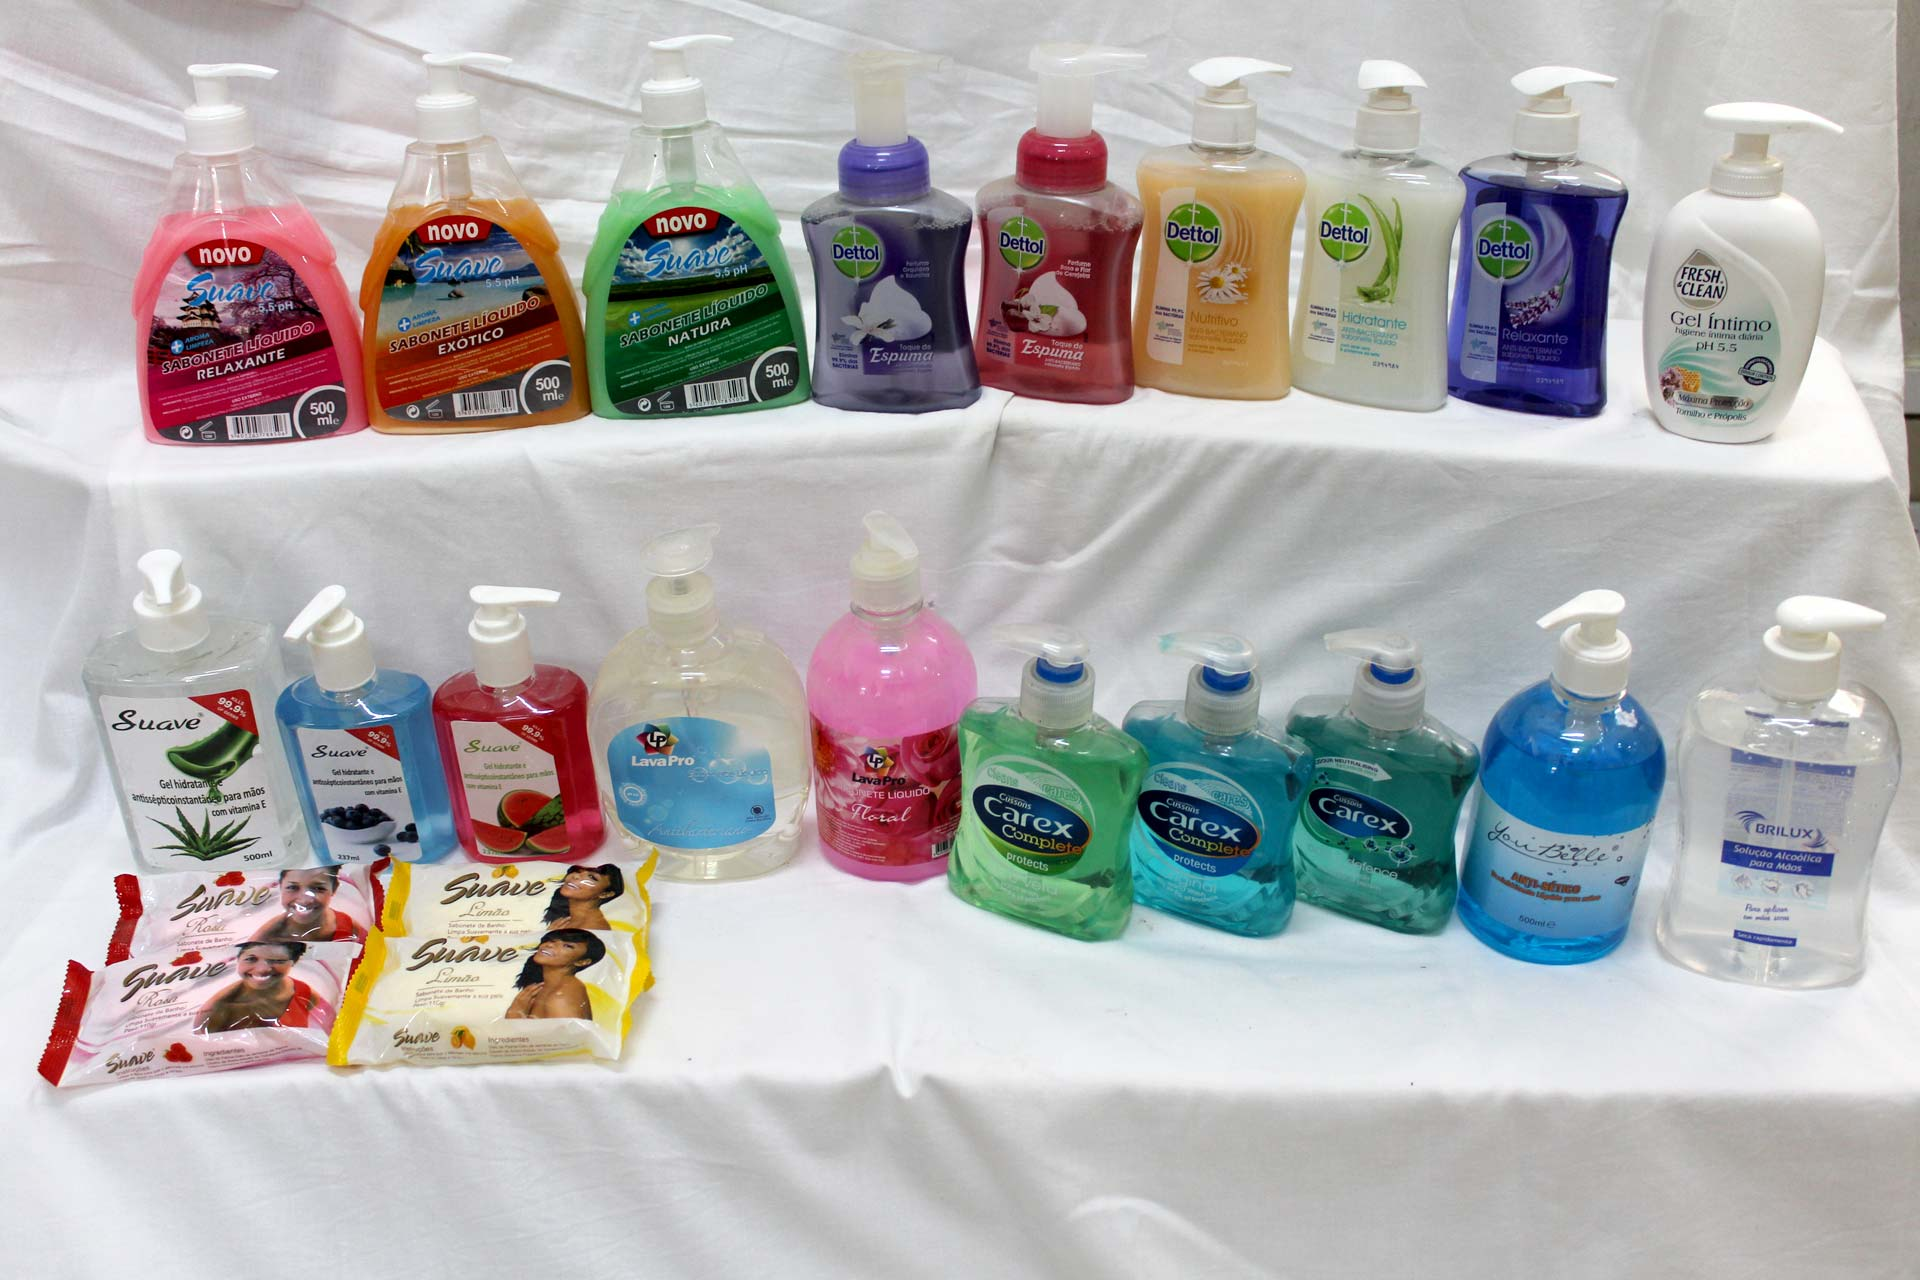 Various Personal Hygiene Products from Suave, Dettol, Fresh & Clean, LavaPro, Carex and You Belle